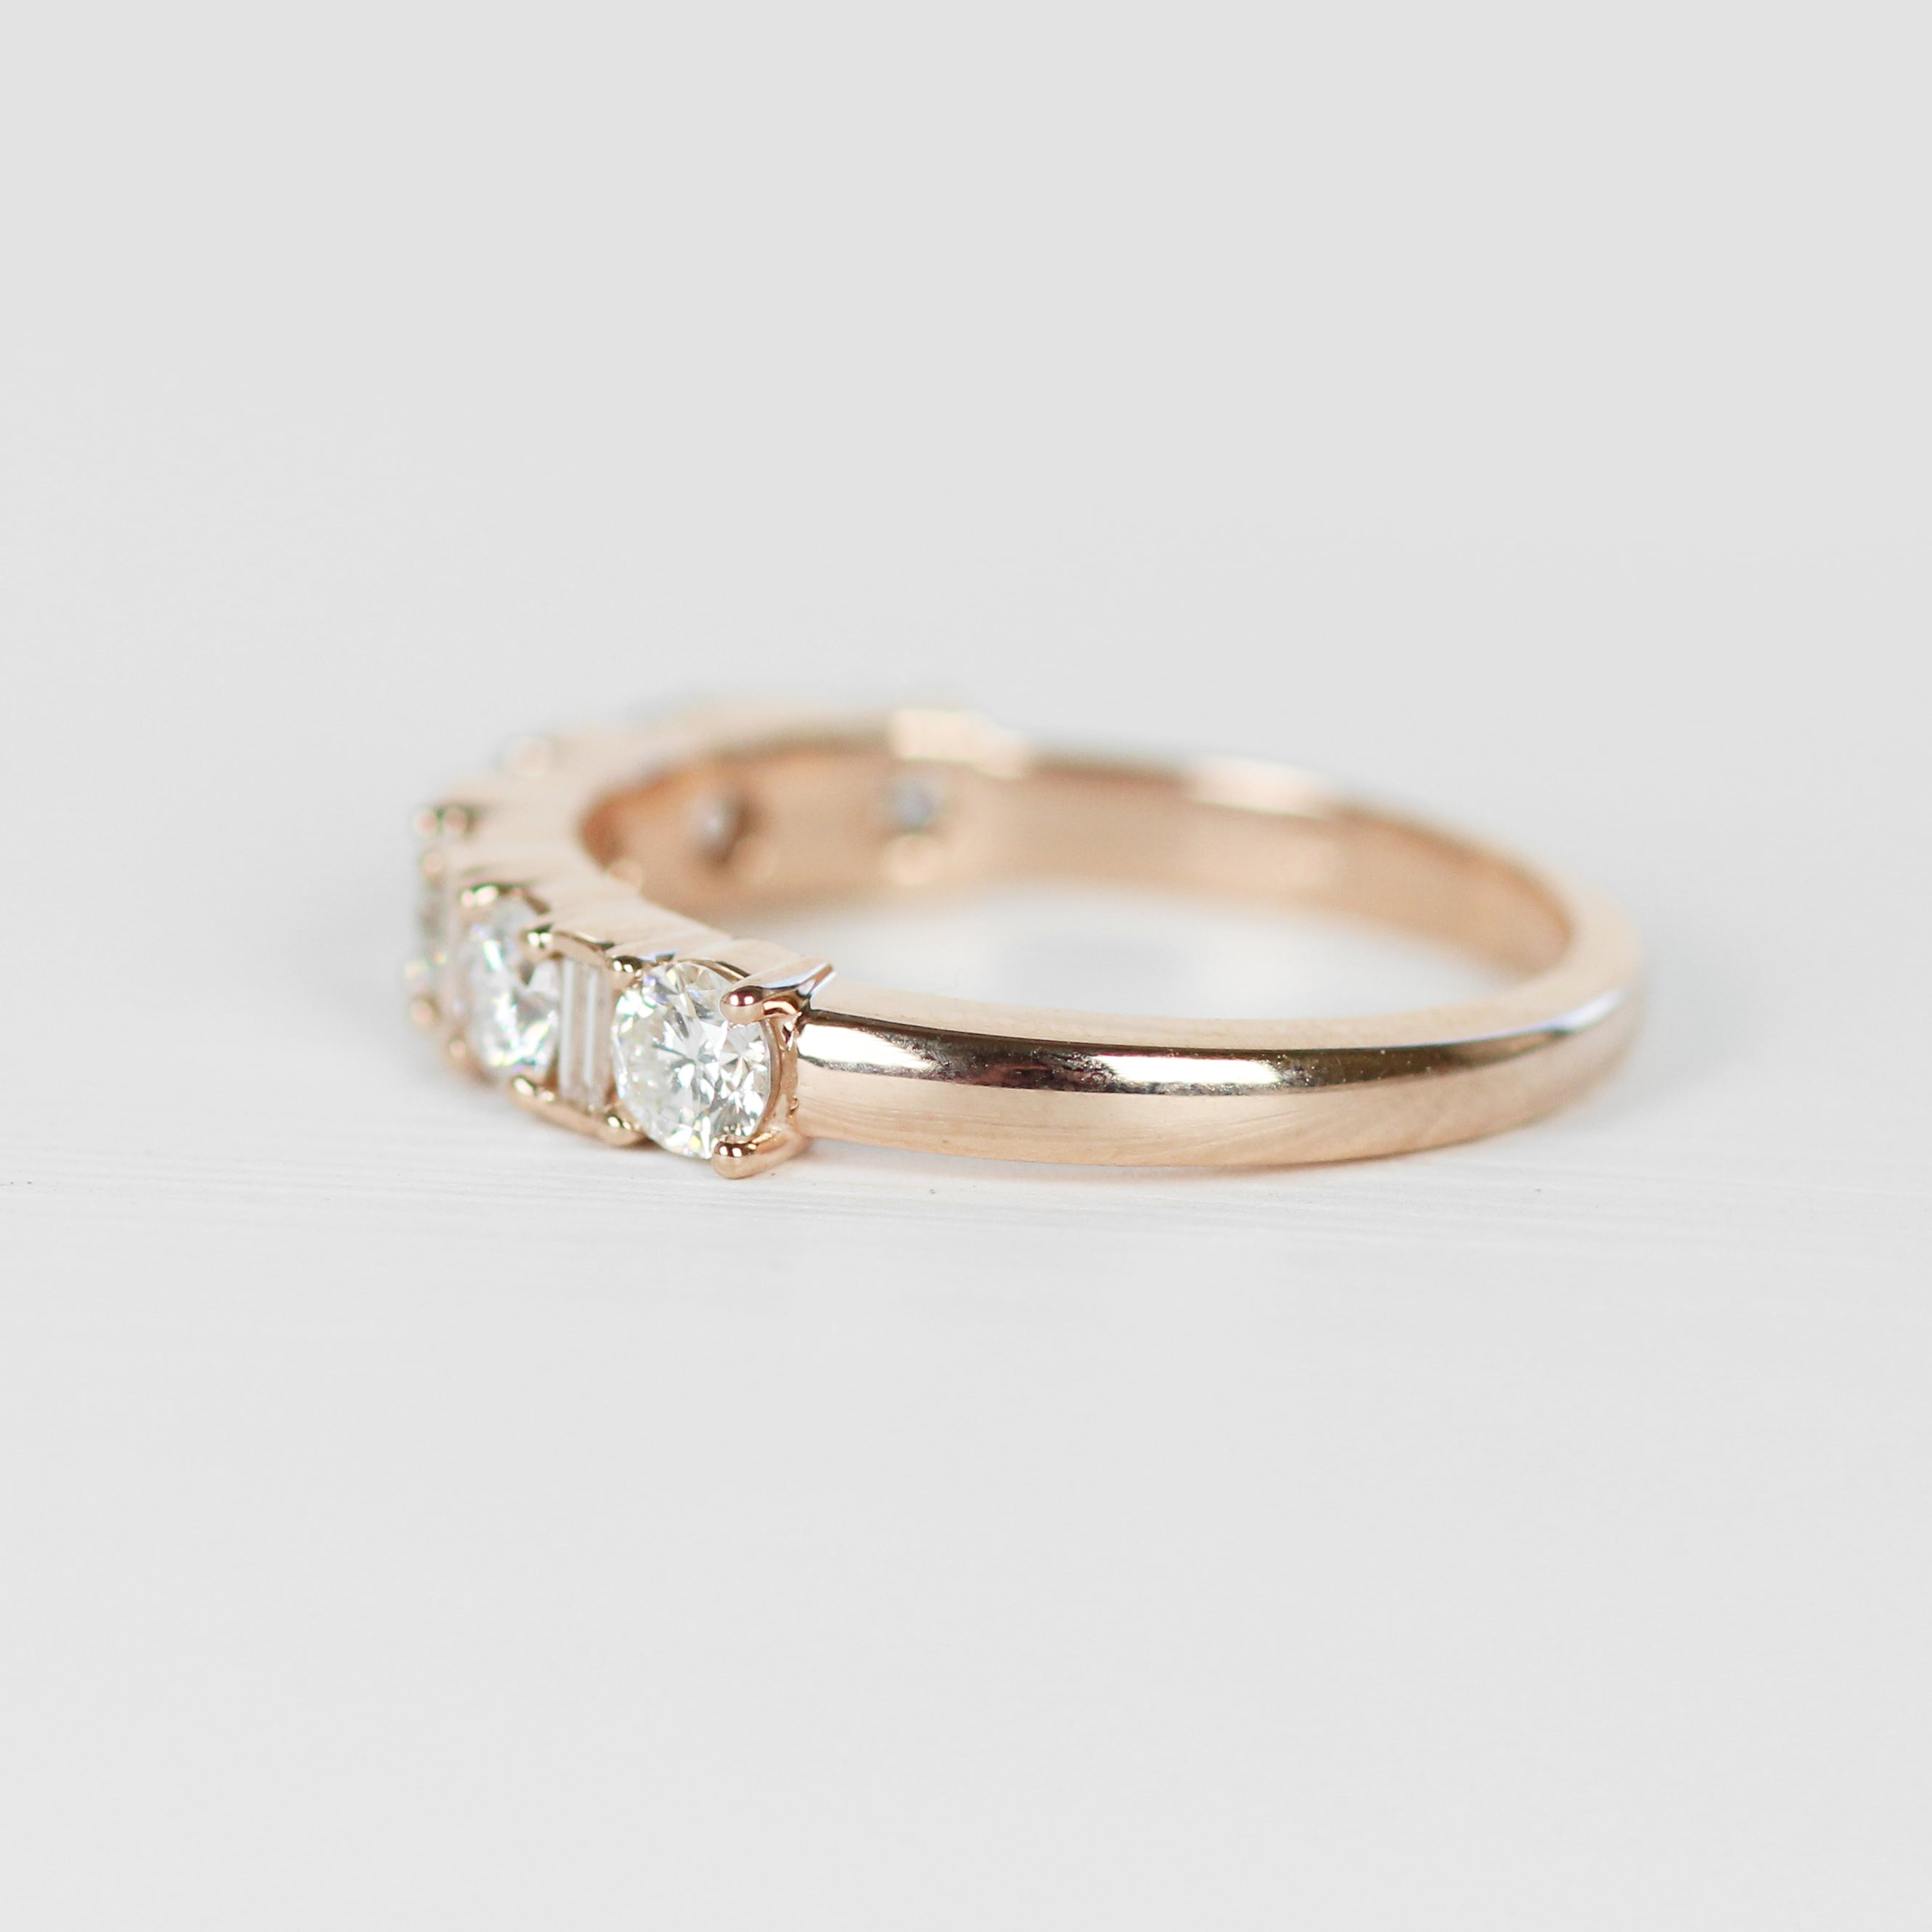 Demetria Diamond Engagement Ring Band - White diamonds - Celestial Diamonds ® by Midwinter Co.